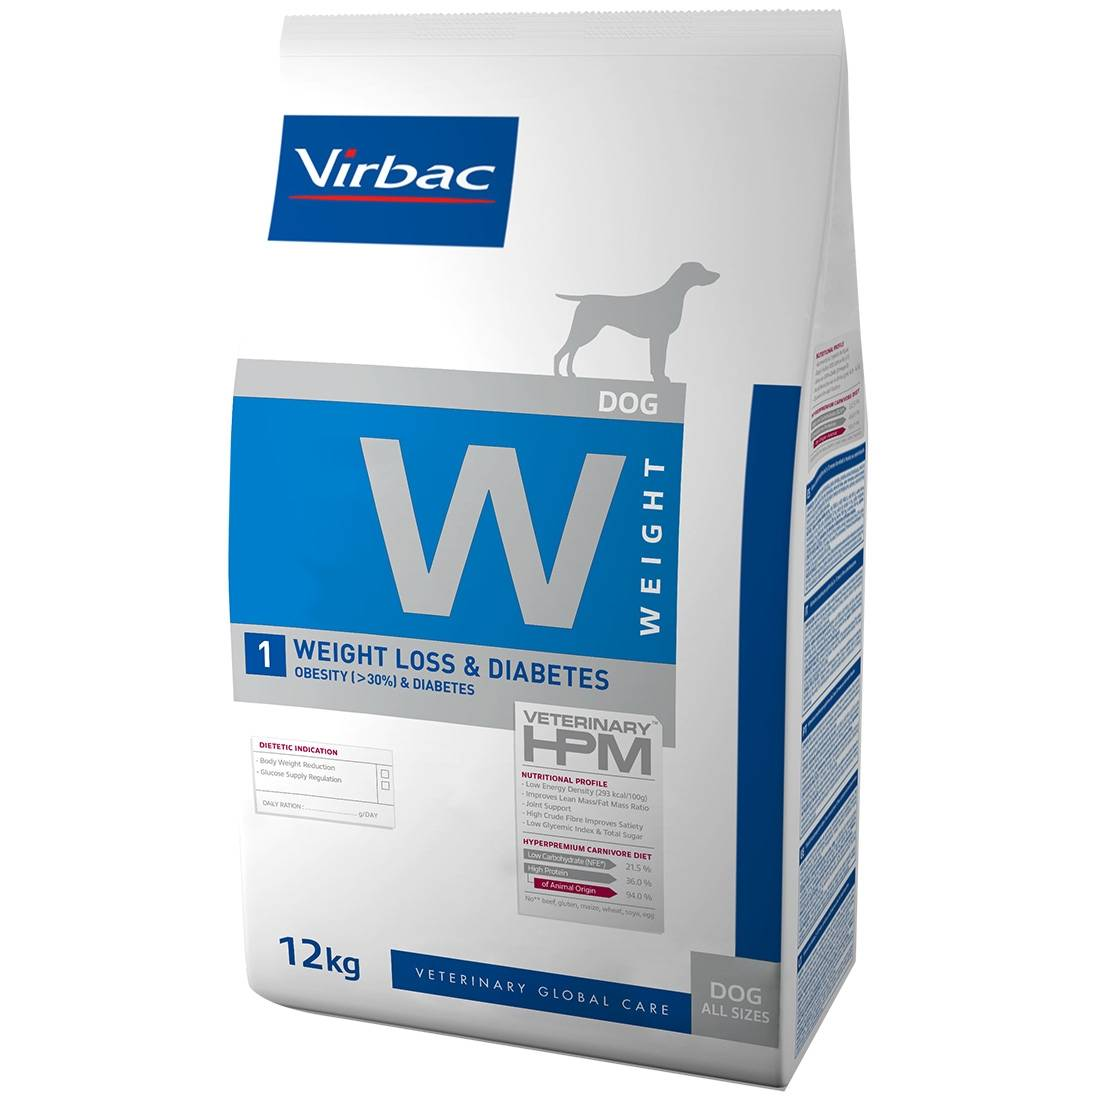 Virbac Veterinary HPM Weight Loss & Diabetes Dog Contenance : 3 kg